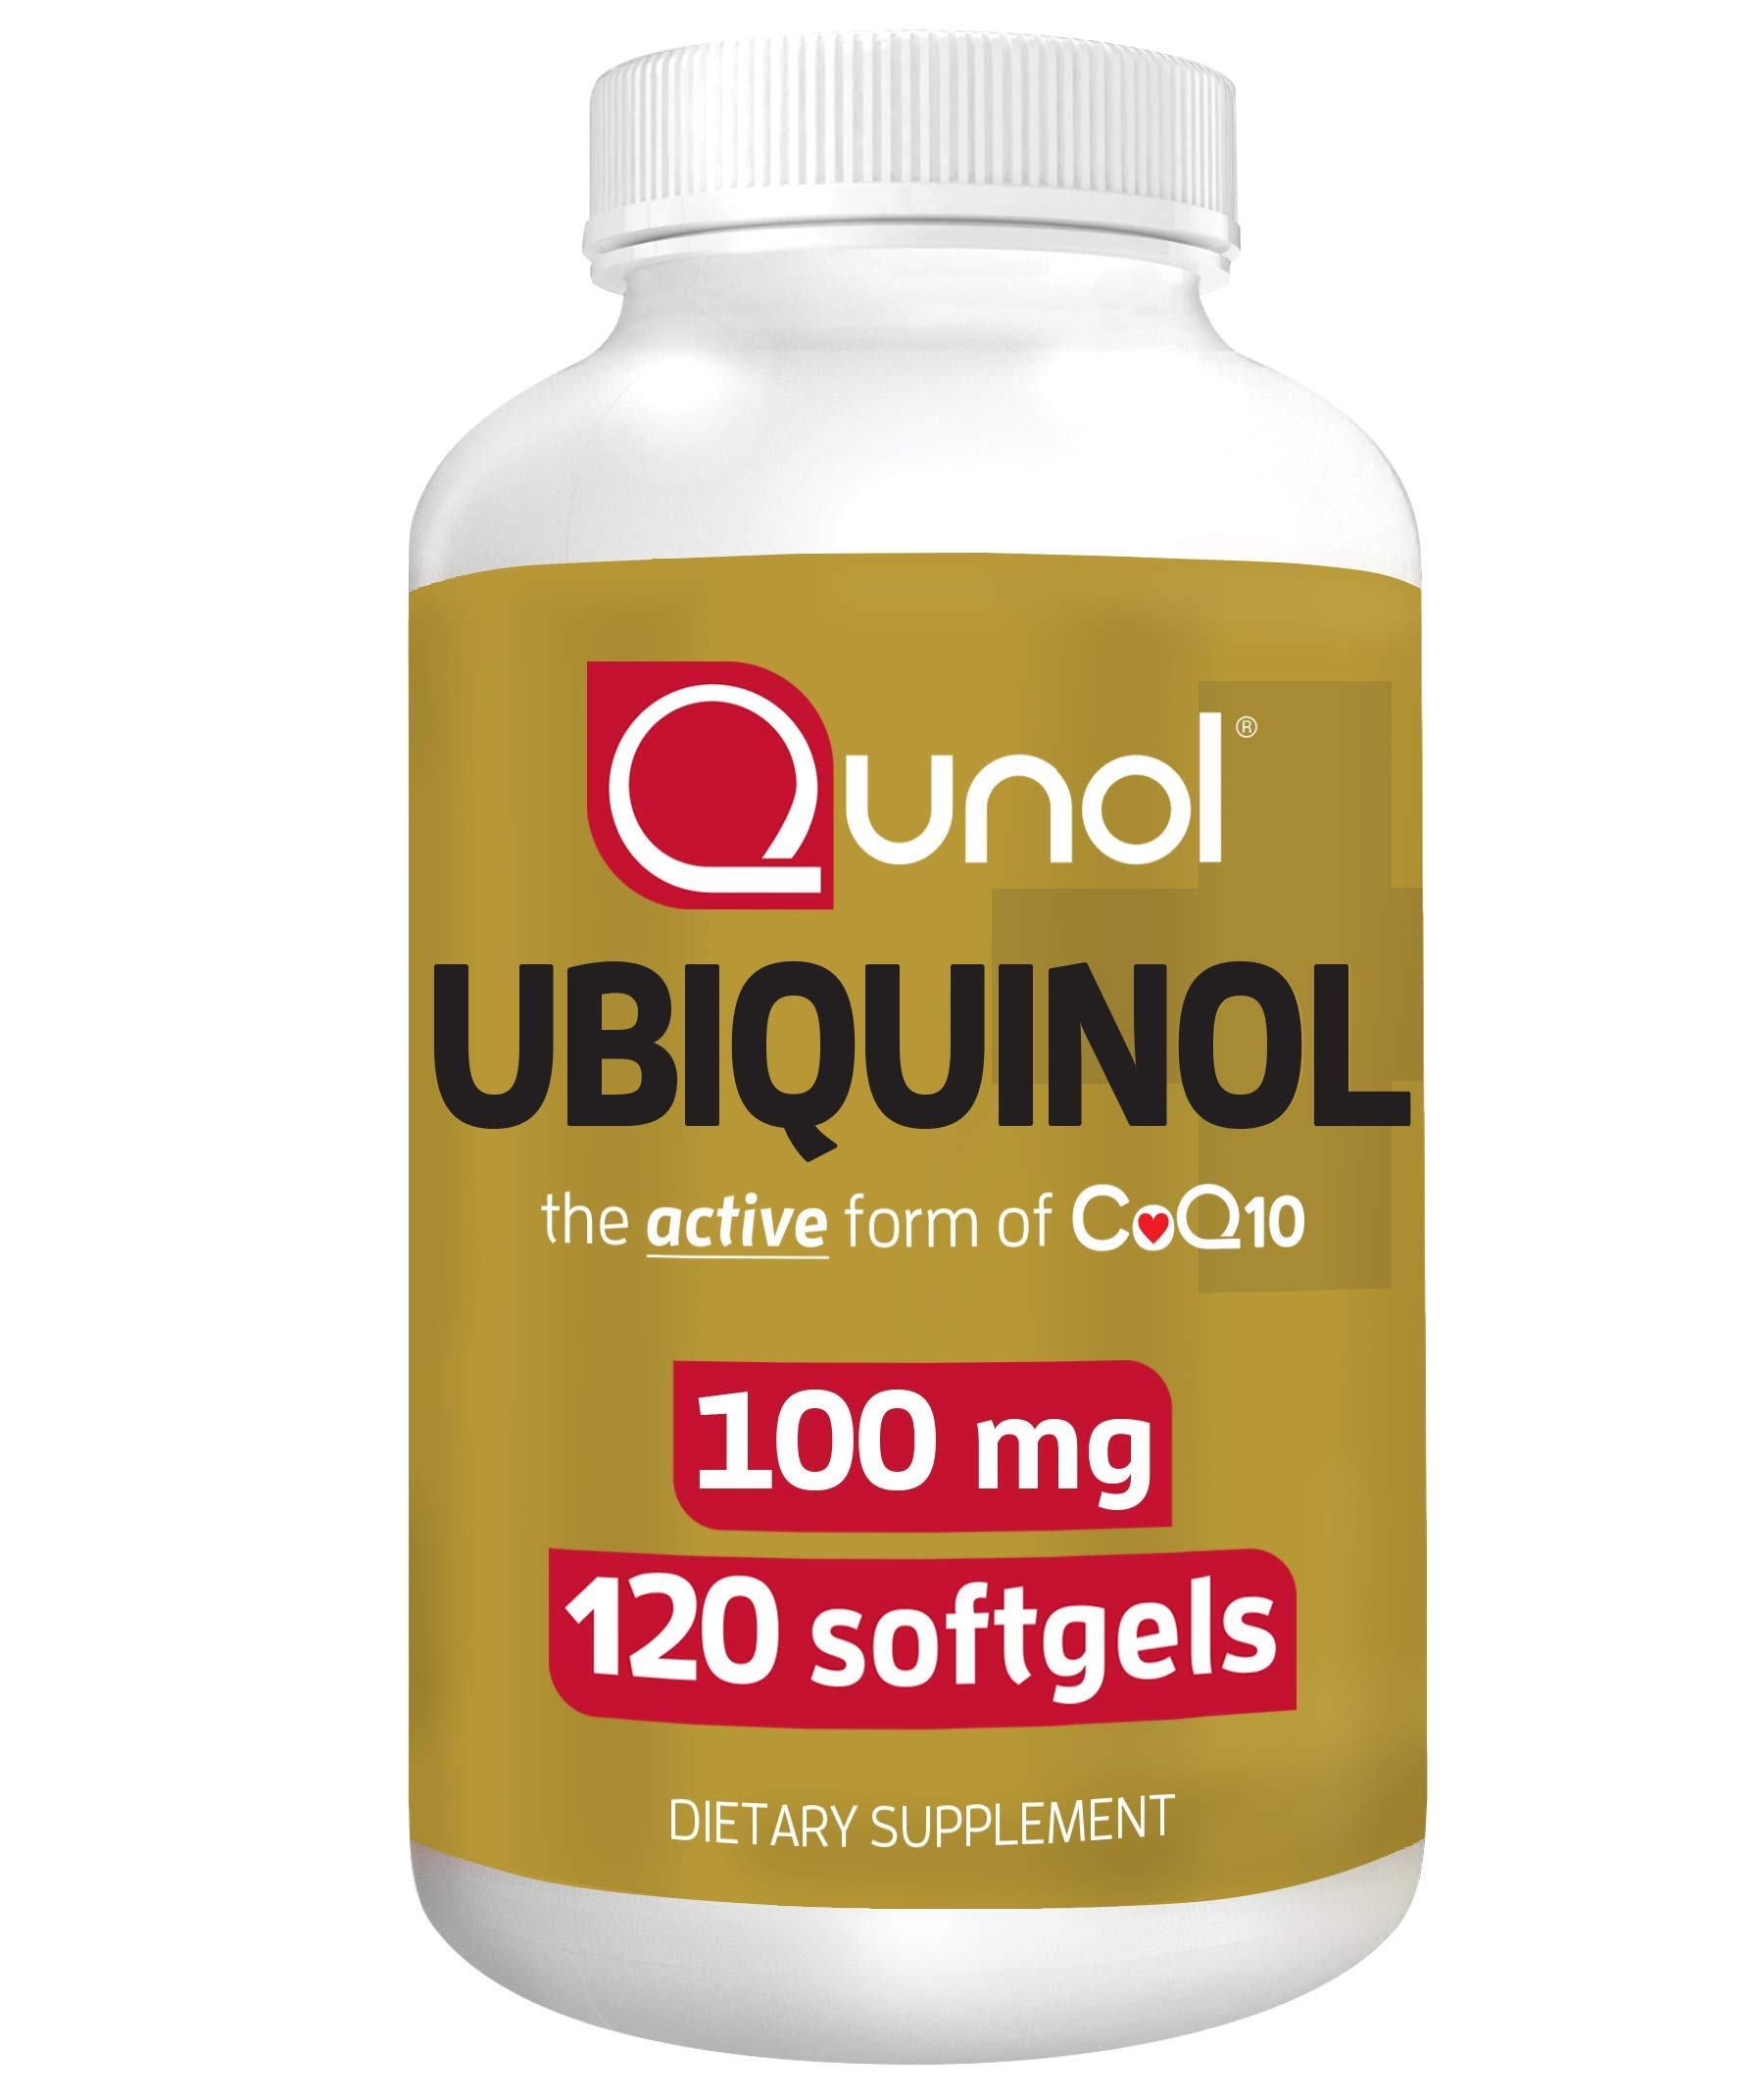 Qunol Ubiquinol, Powerful Antioxidant for Heart and Vascular Health, Essential for Energy Production, Natural Supplement Active Form of CoQ10